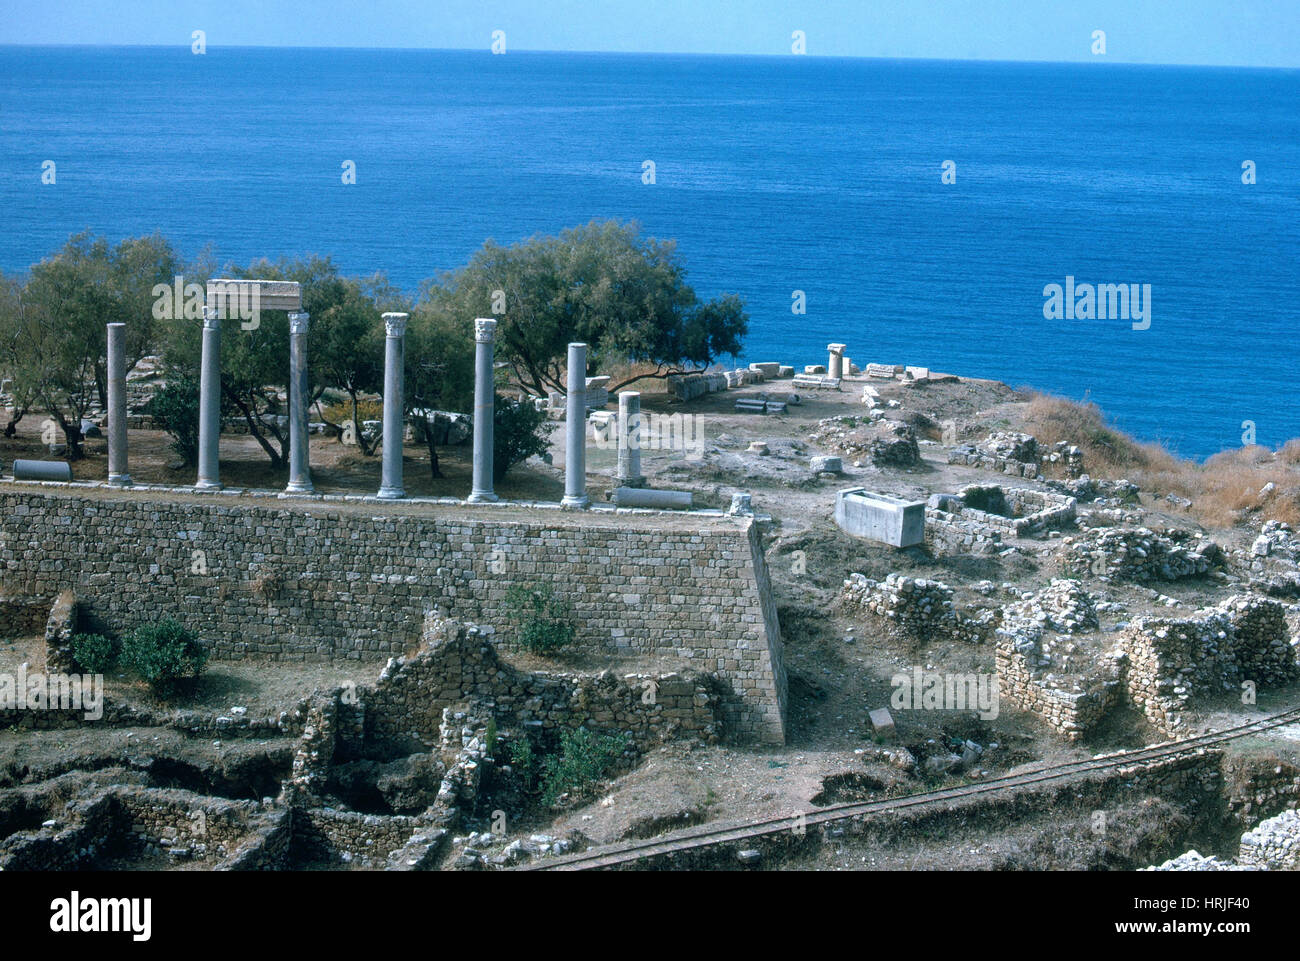 Ancient Ruins, Lebanon - Stock Image